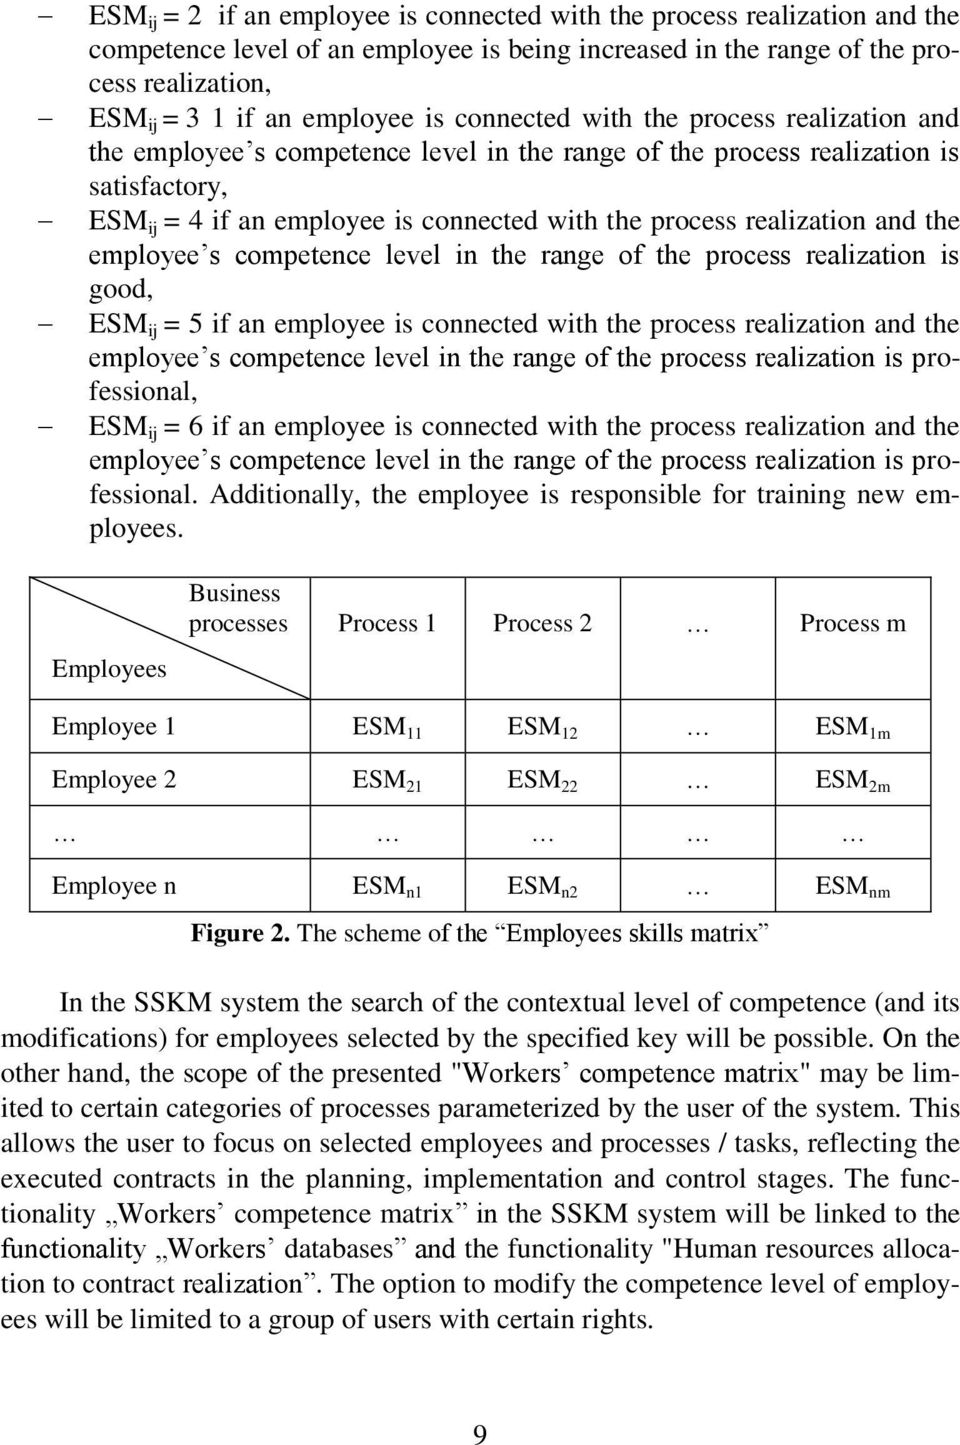 and the employee s competence level in the range of the process realization is good, ESM ij = 5 if an employee is connected with the process realization and the employee s competence level in the